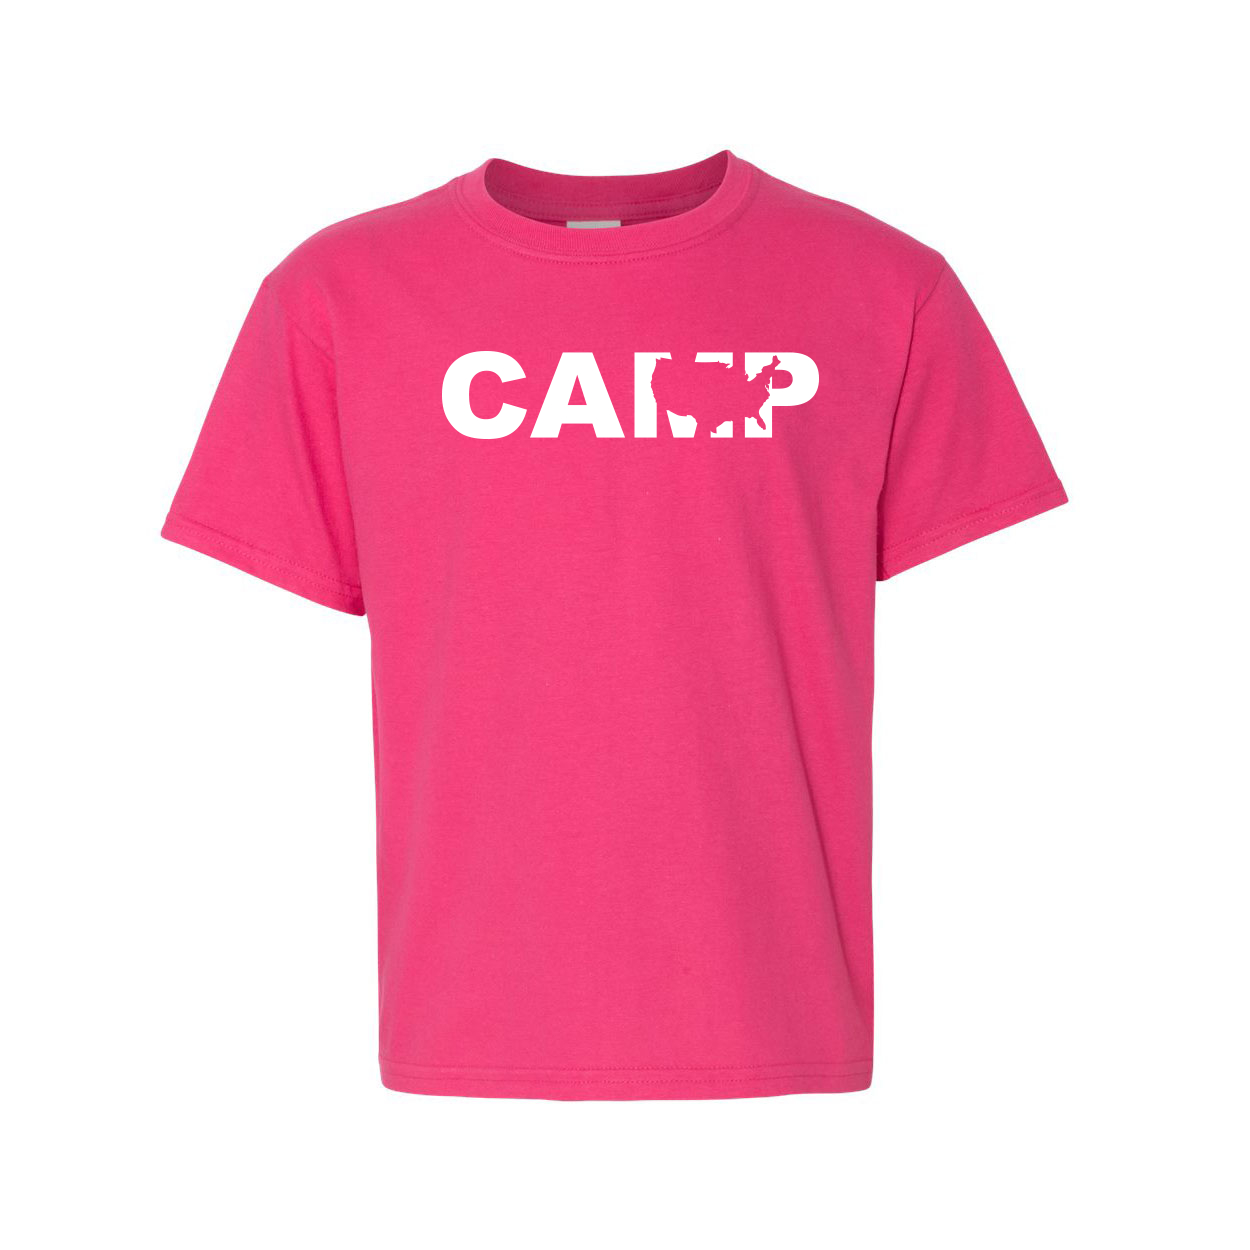 Camp United States Classic Youth T-Shirt Pink (White Logo)